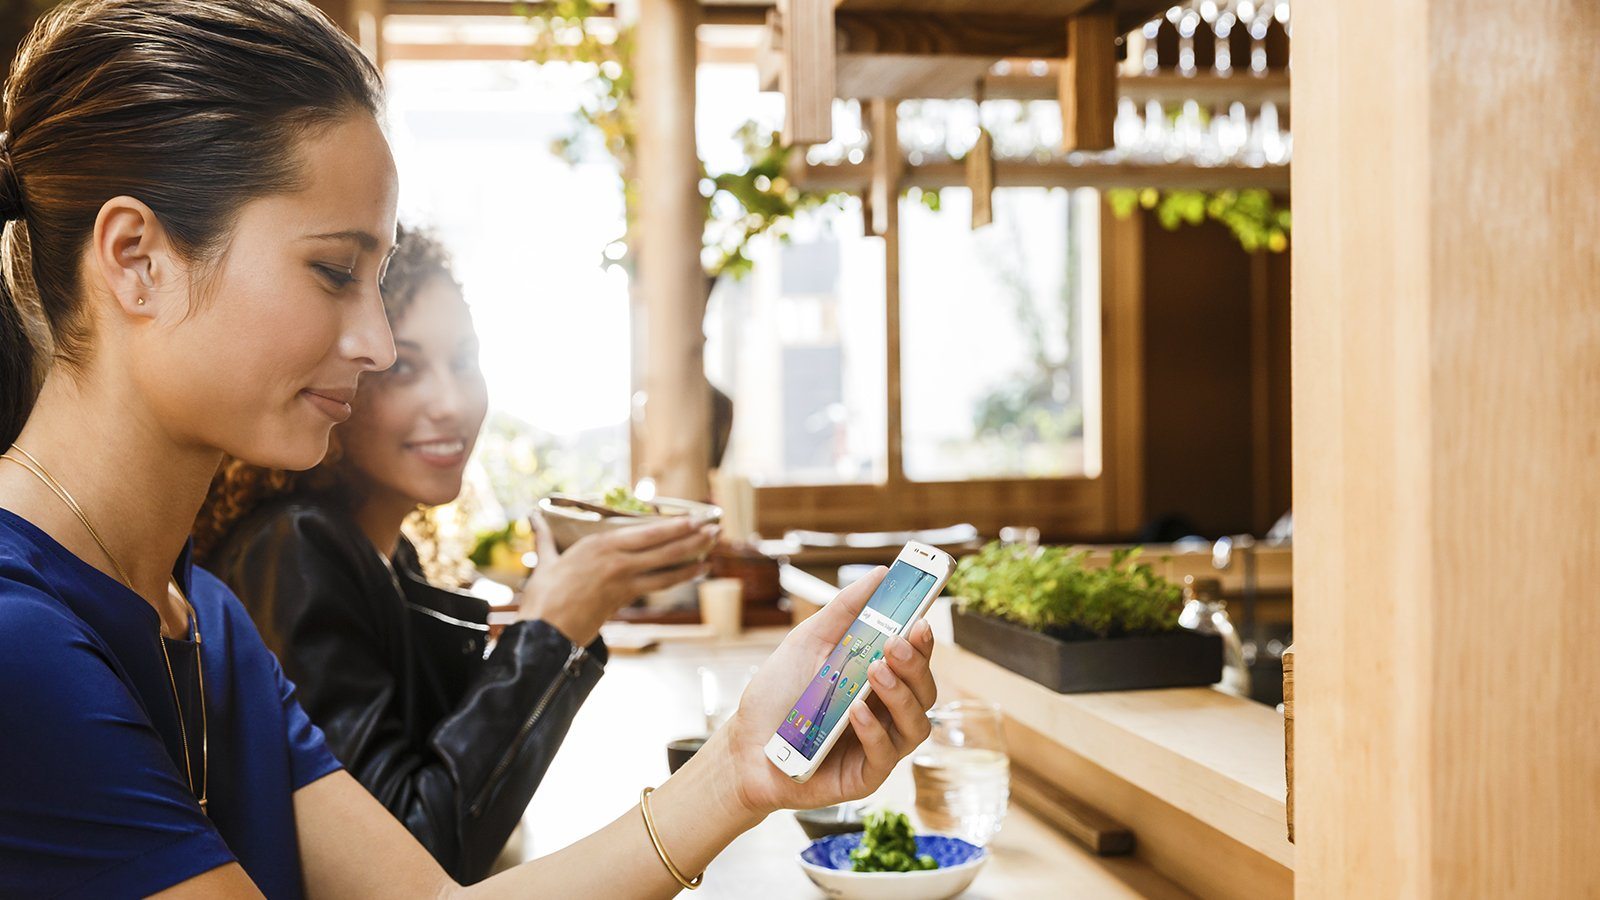 Woman holding smart phone chatting with another woman at bar.